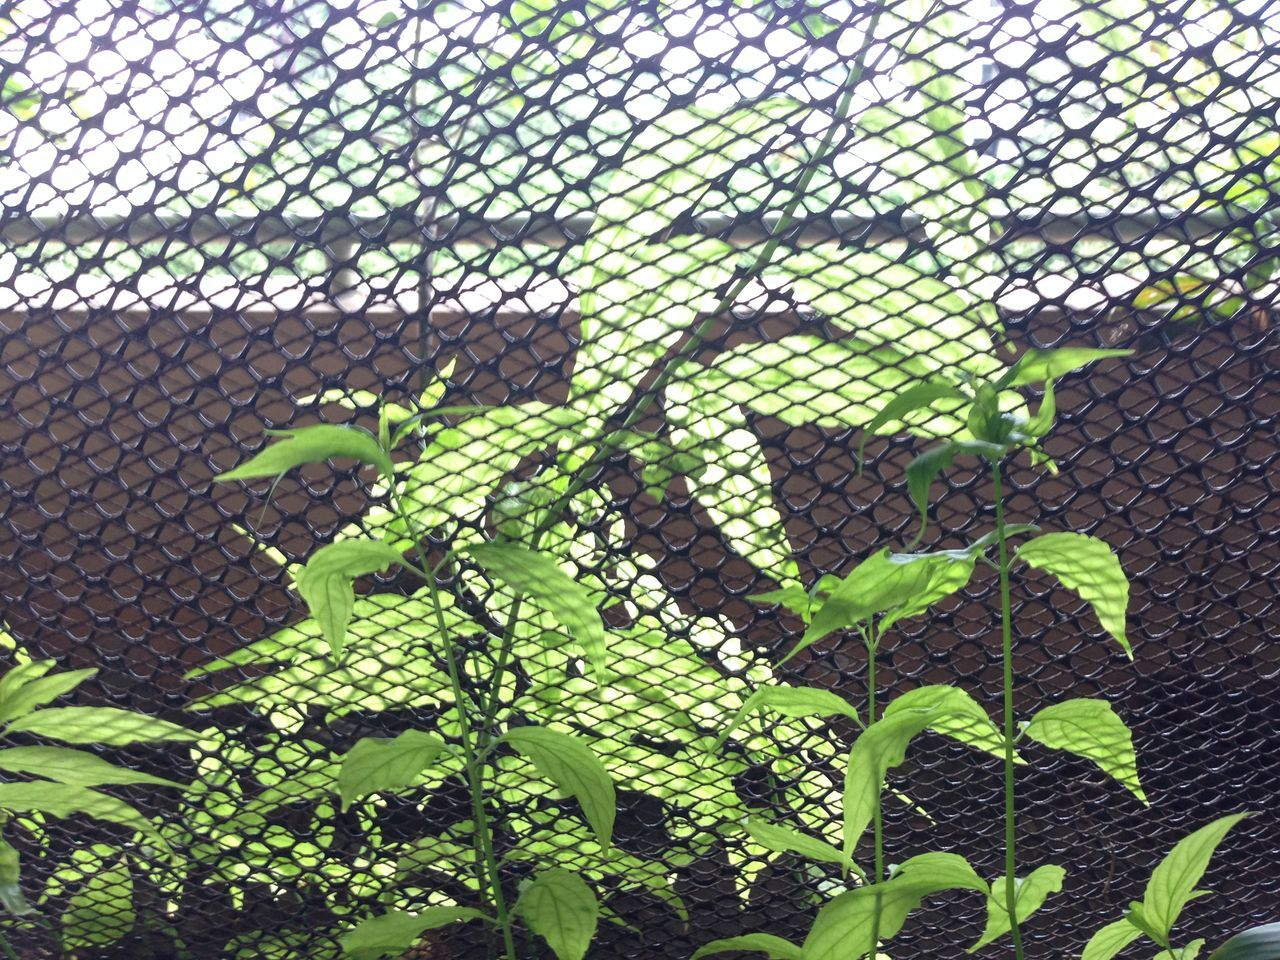 Plants Growing Behind Fence